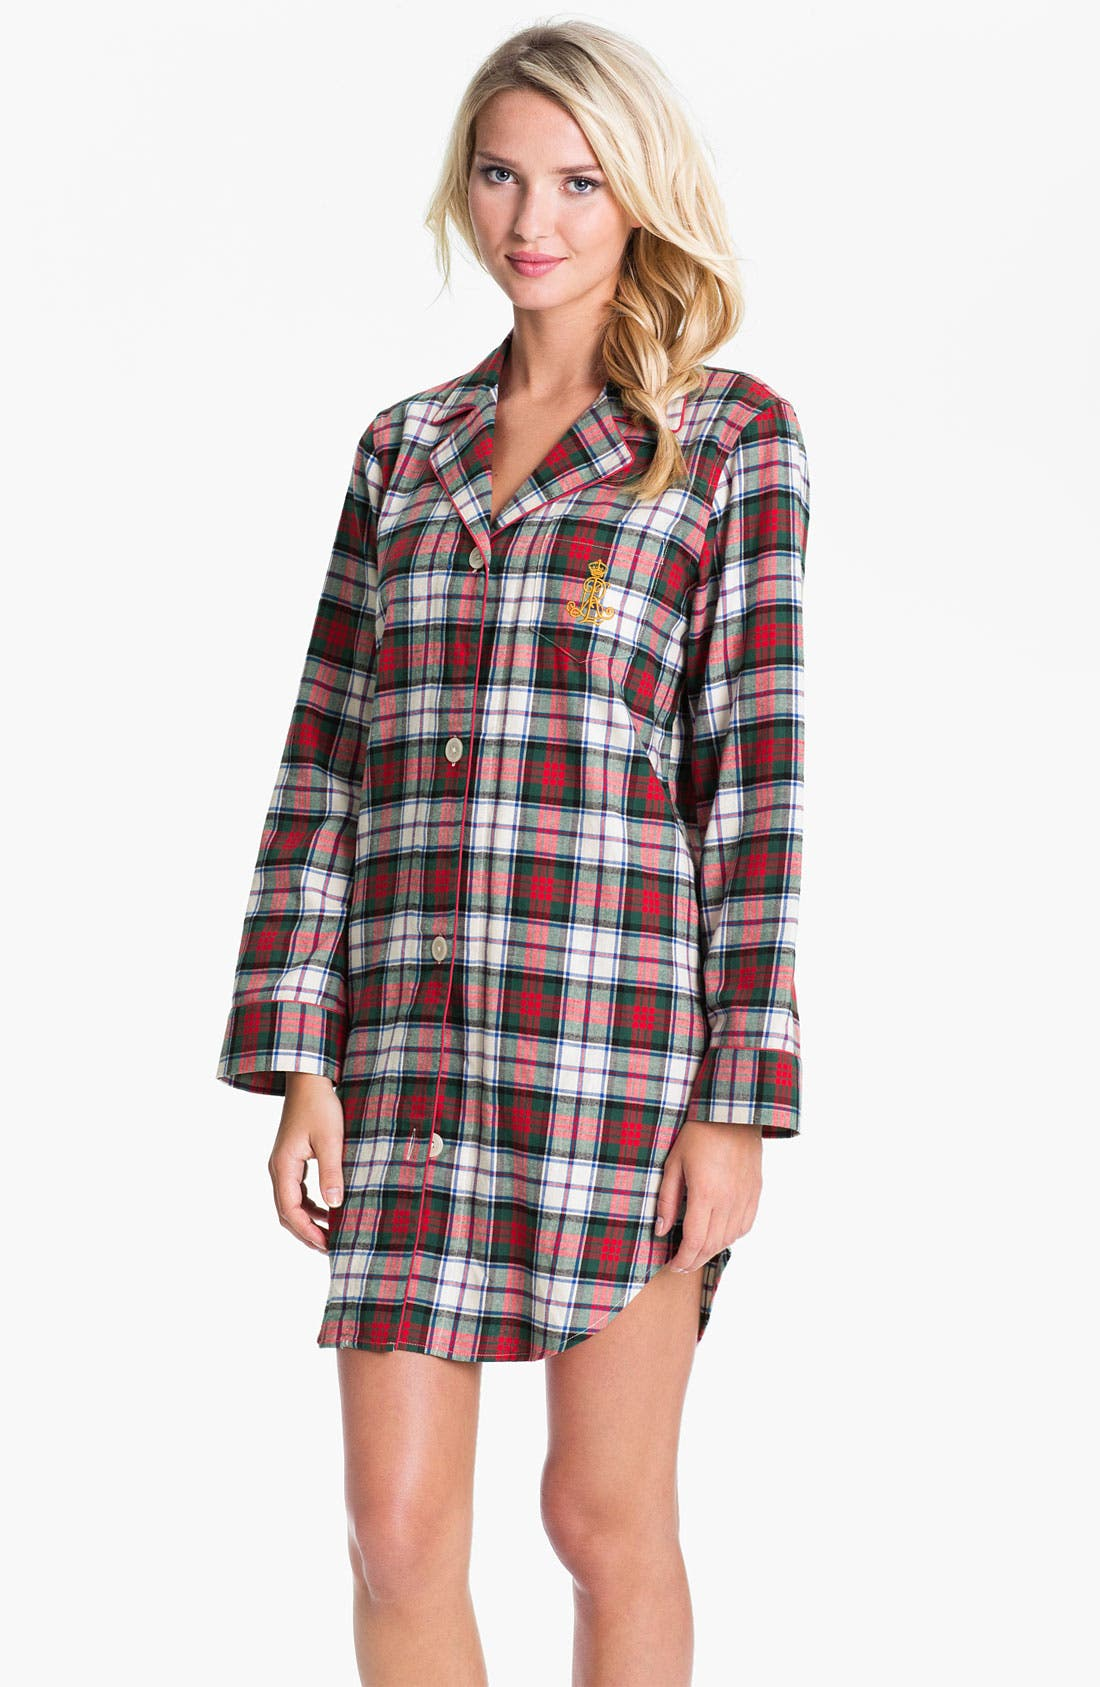 Alternate Image 1 Selected - Lauren Ralph Lauren Sleepwear Brushed Twill Nightshirt